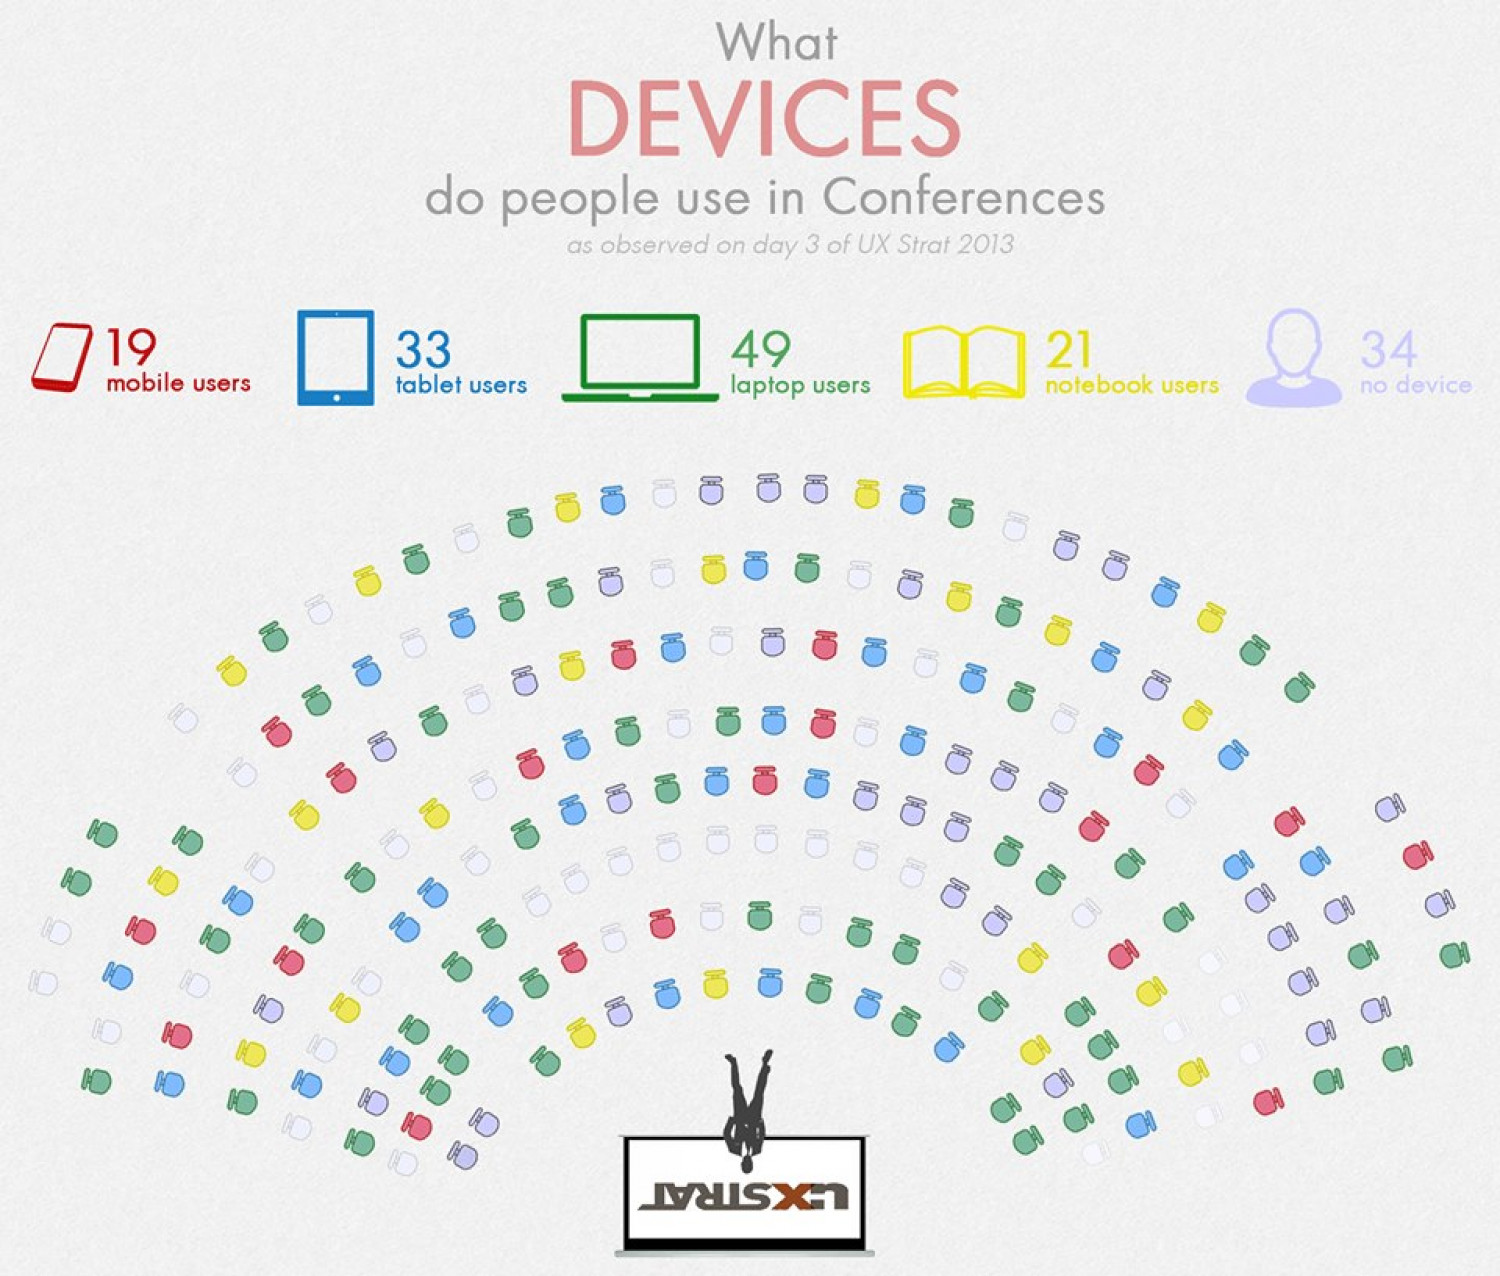 What devices do people use in Conferences Infographic